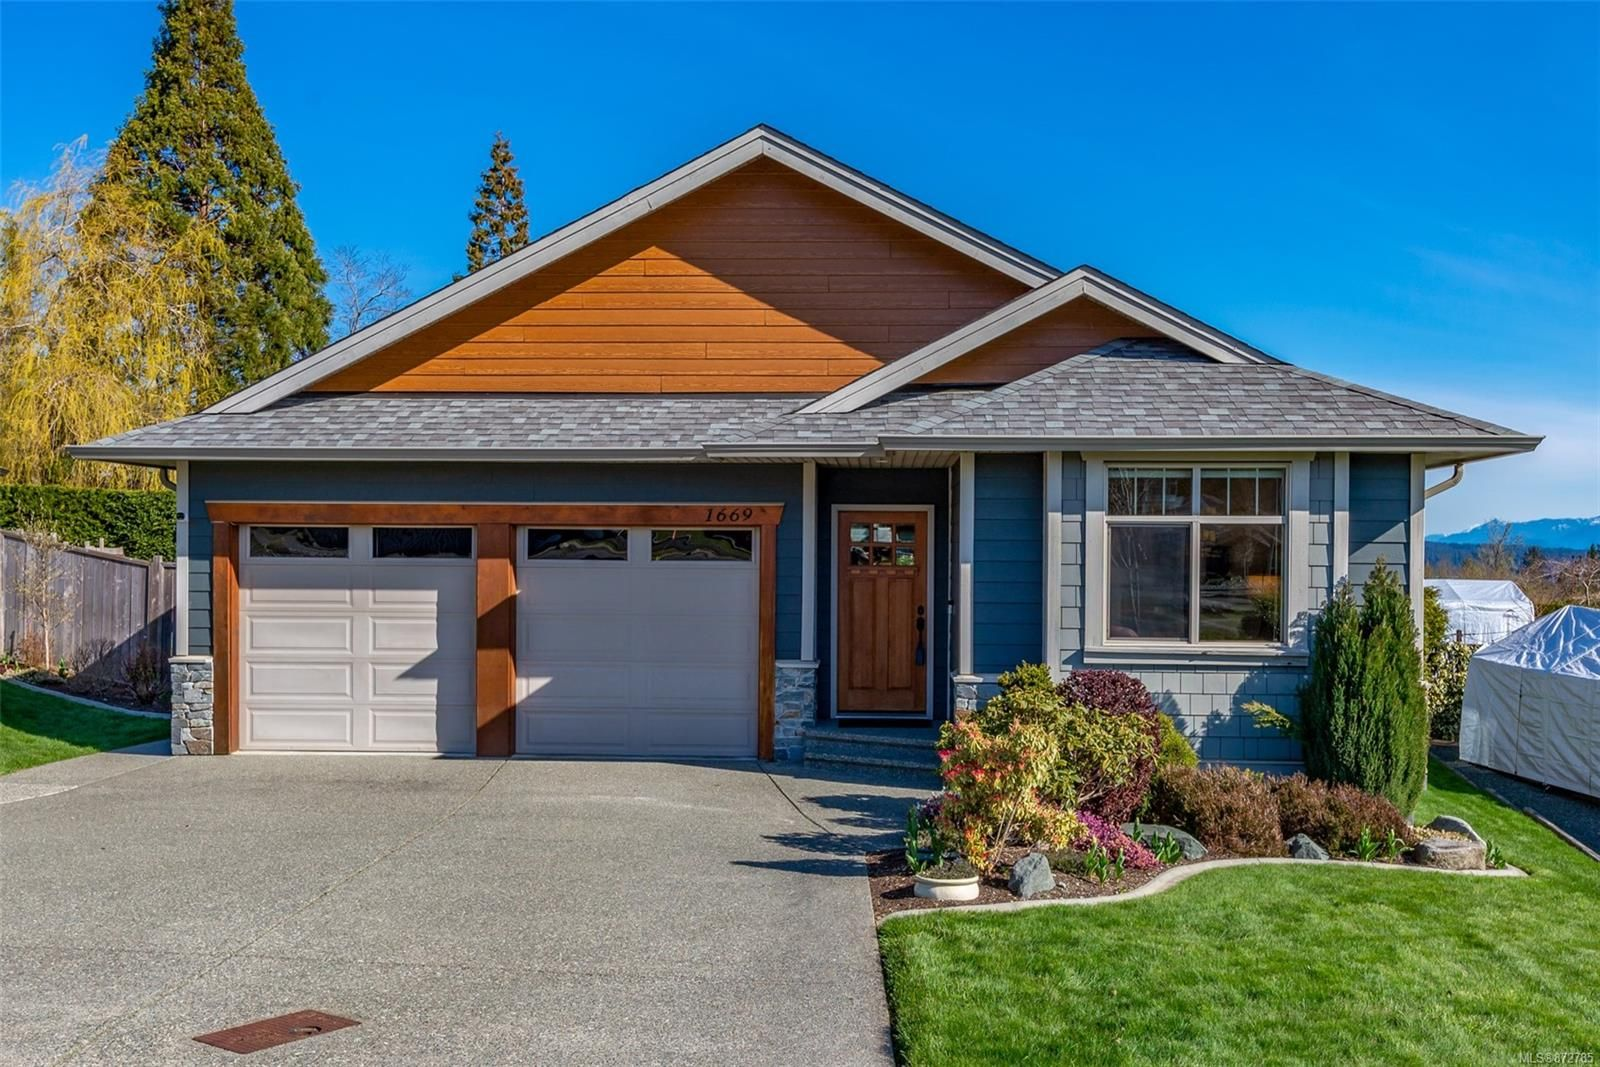 Main Photo: 1669 Glen Eagle Dr in : CR Campbell River Central House for sale (Campbell River)  : MLS®# 872785